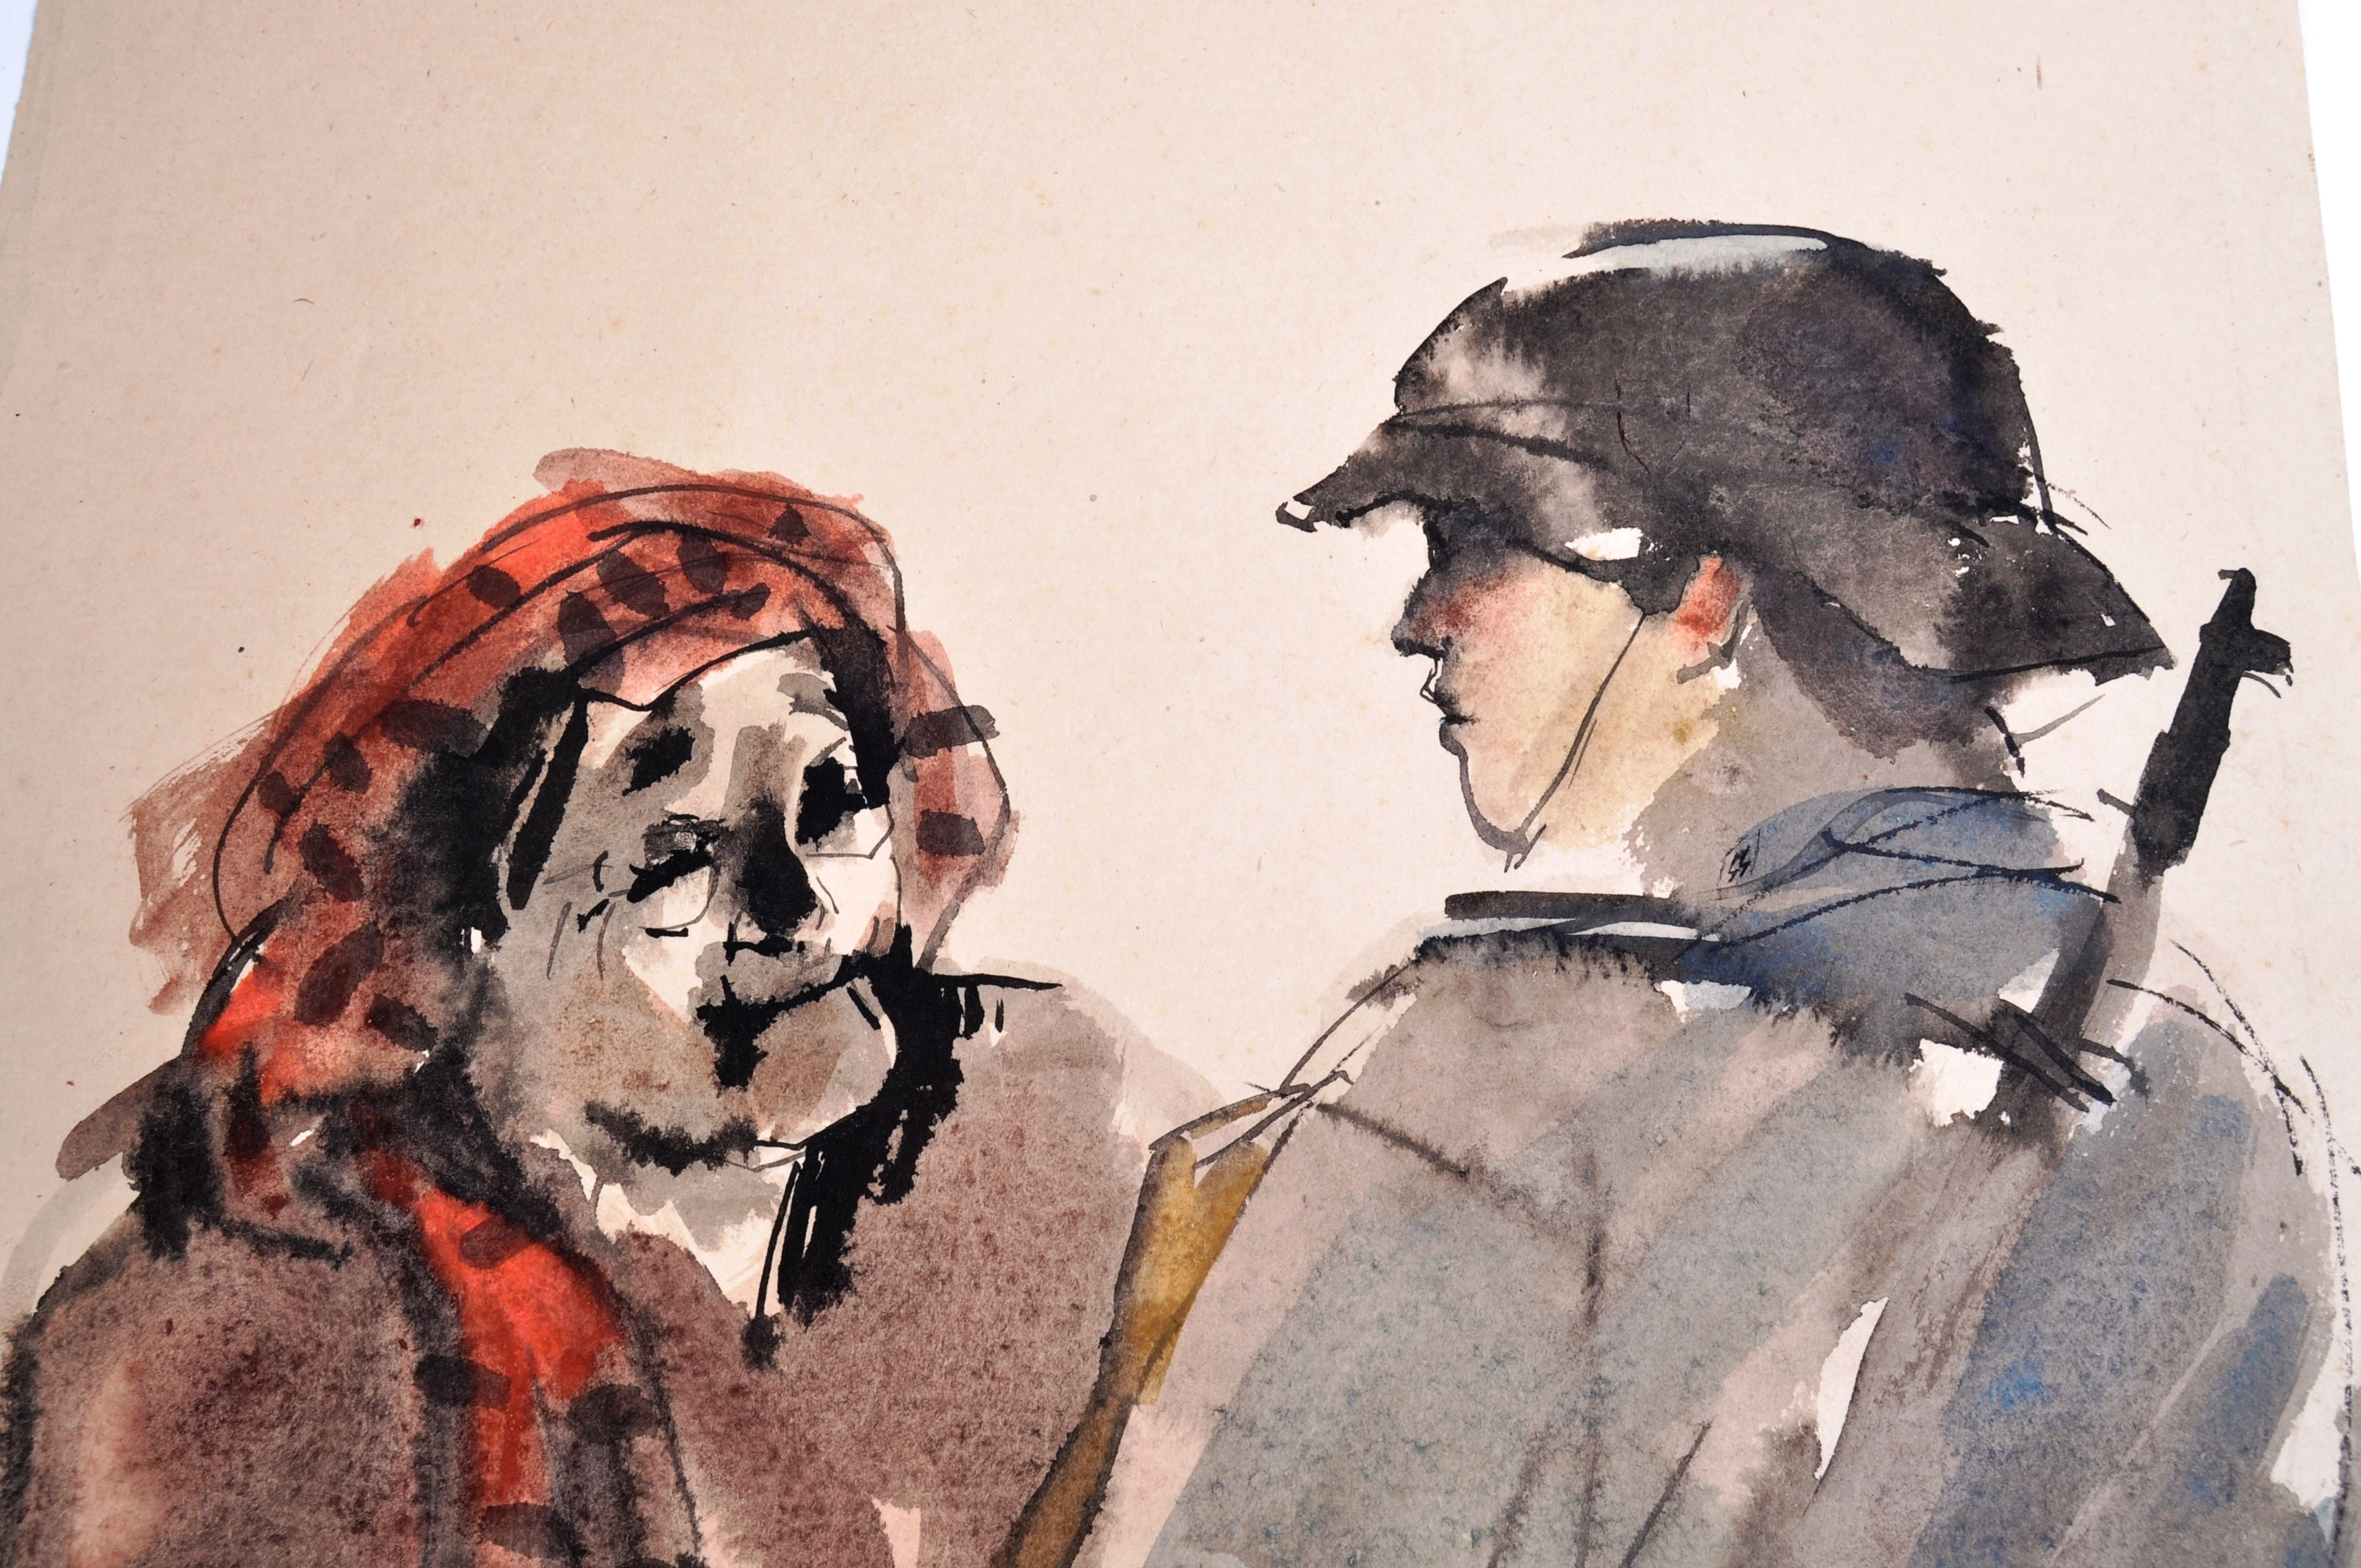 WWII SECOND WORLD WAR WATERCOLOUR PAINTING OF NAZI 1943 - Image 5 of 6